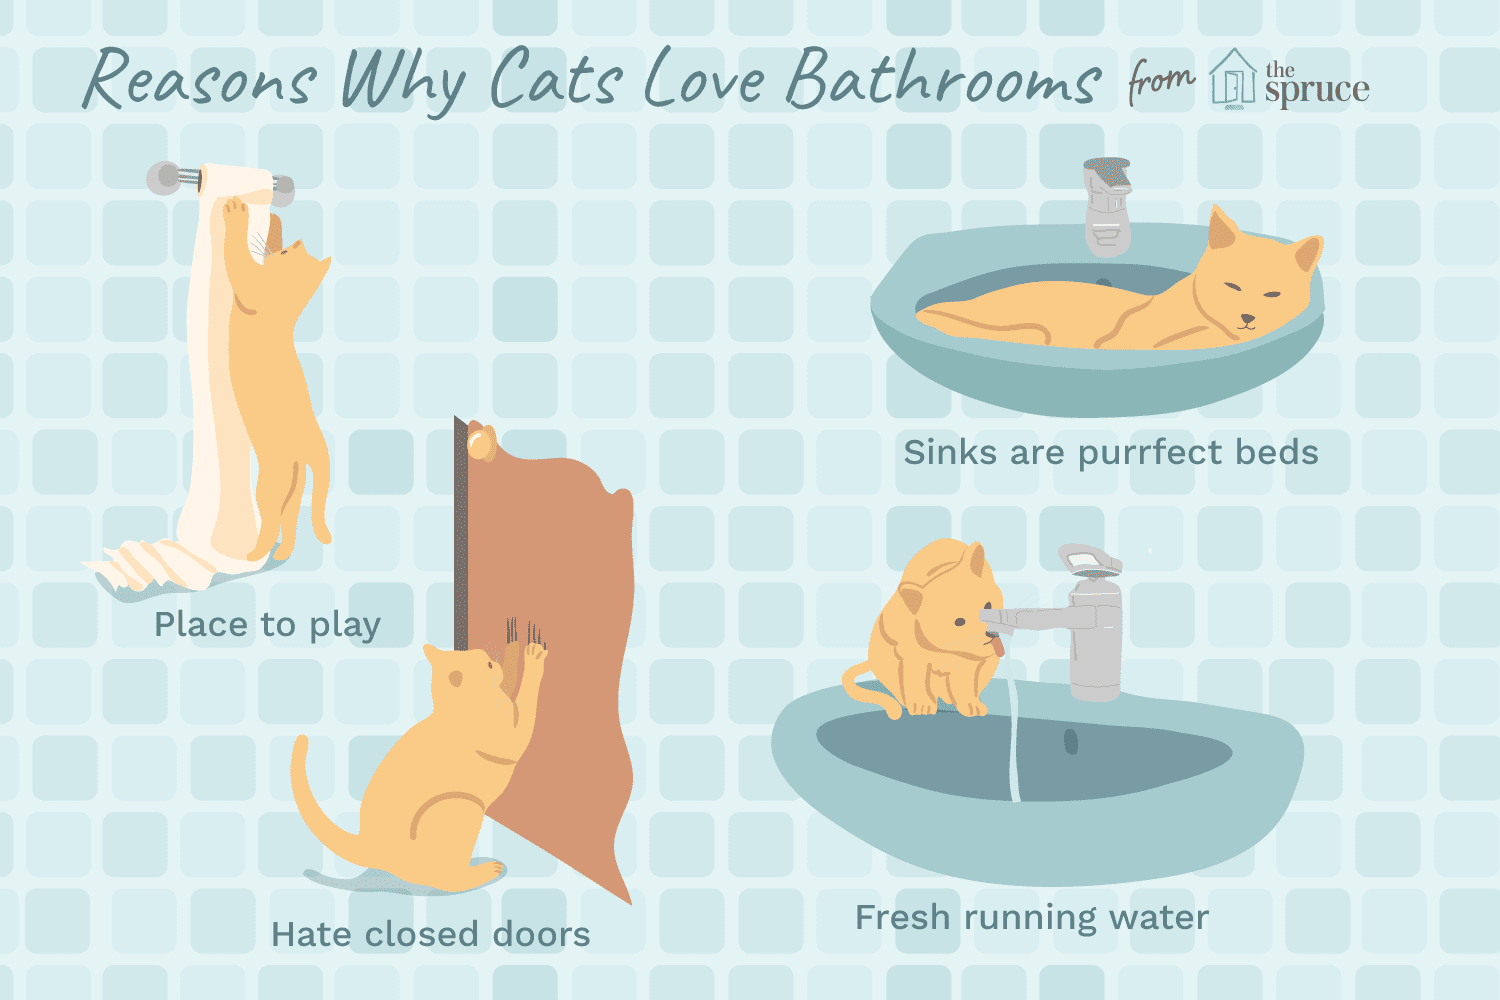 7 Reasons Why Cats Love Bathrooms